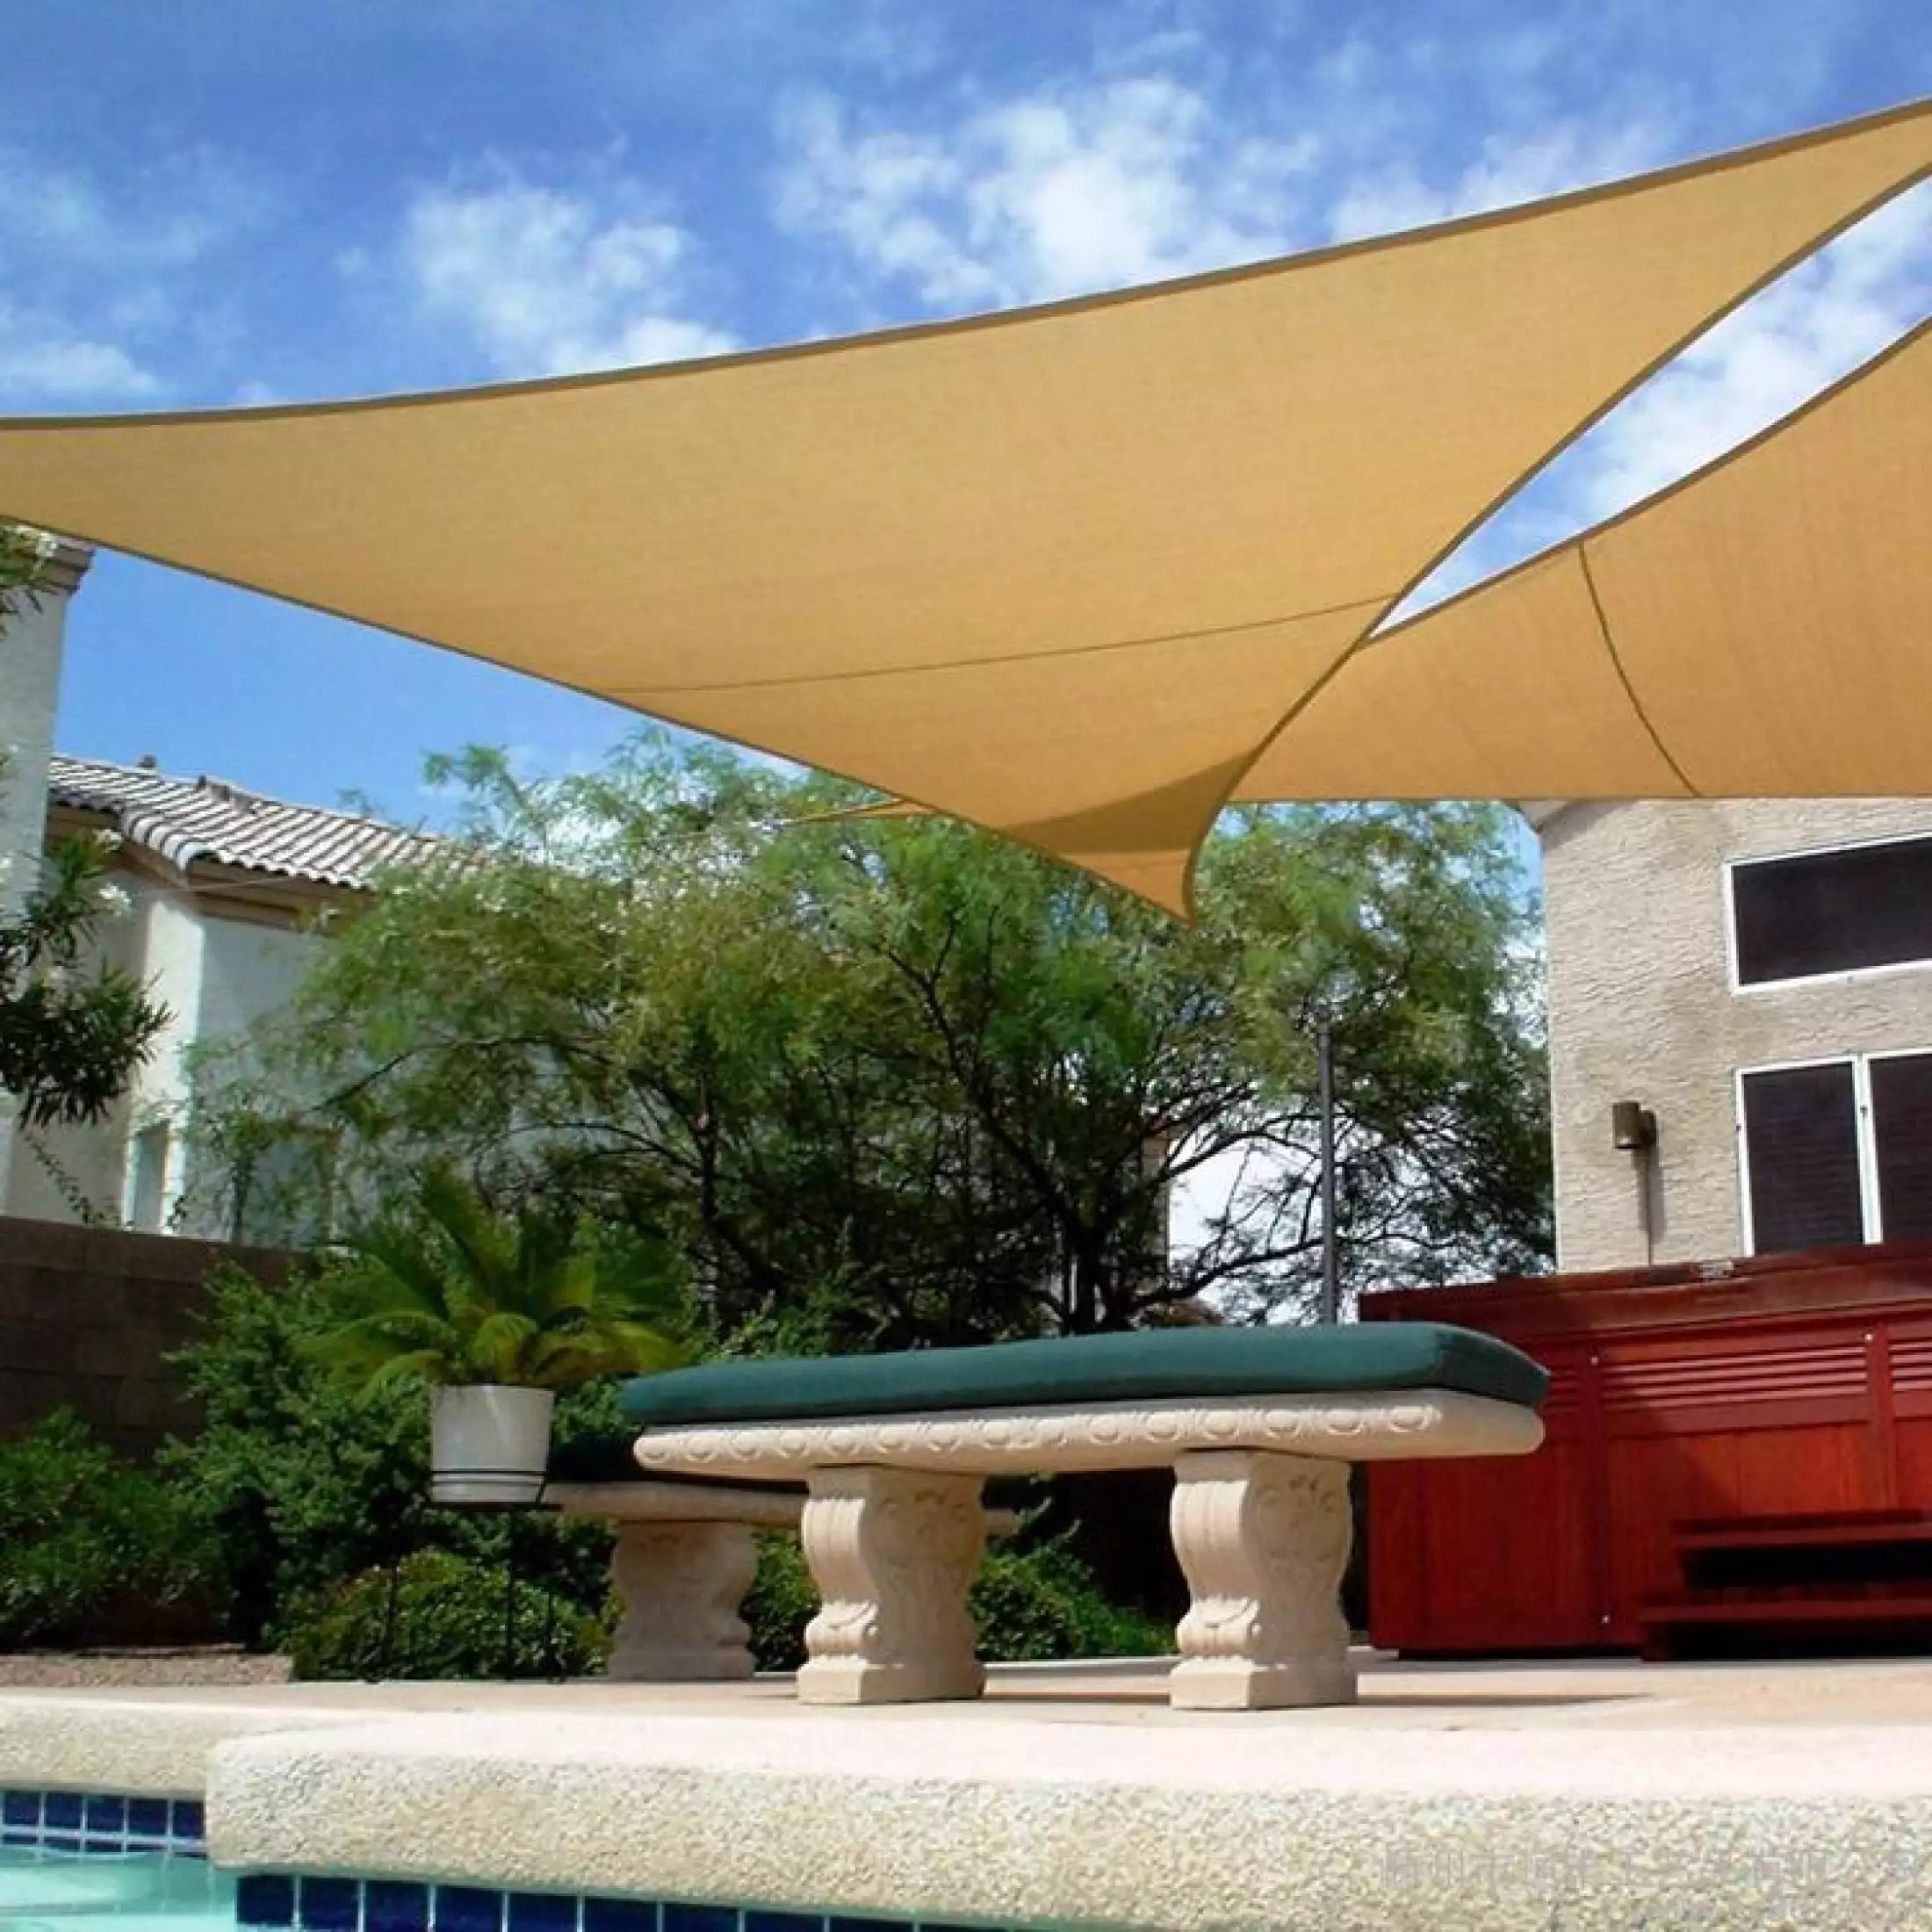 5x5x5m shade sail patio canopy cloth triangle sun shade net lawn plant care patio furniture cover sun shelter desert sand color